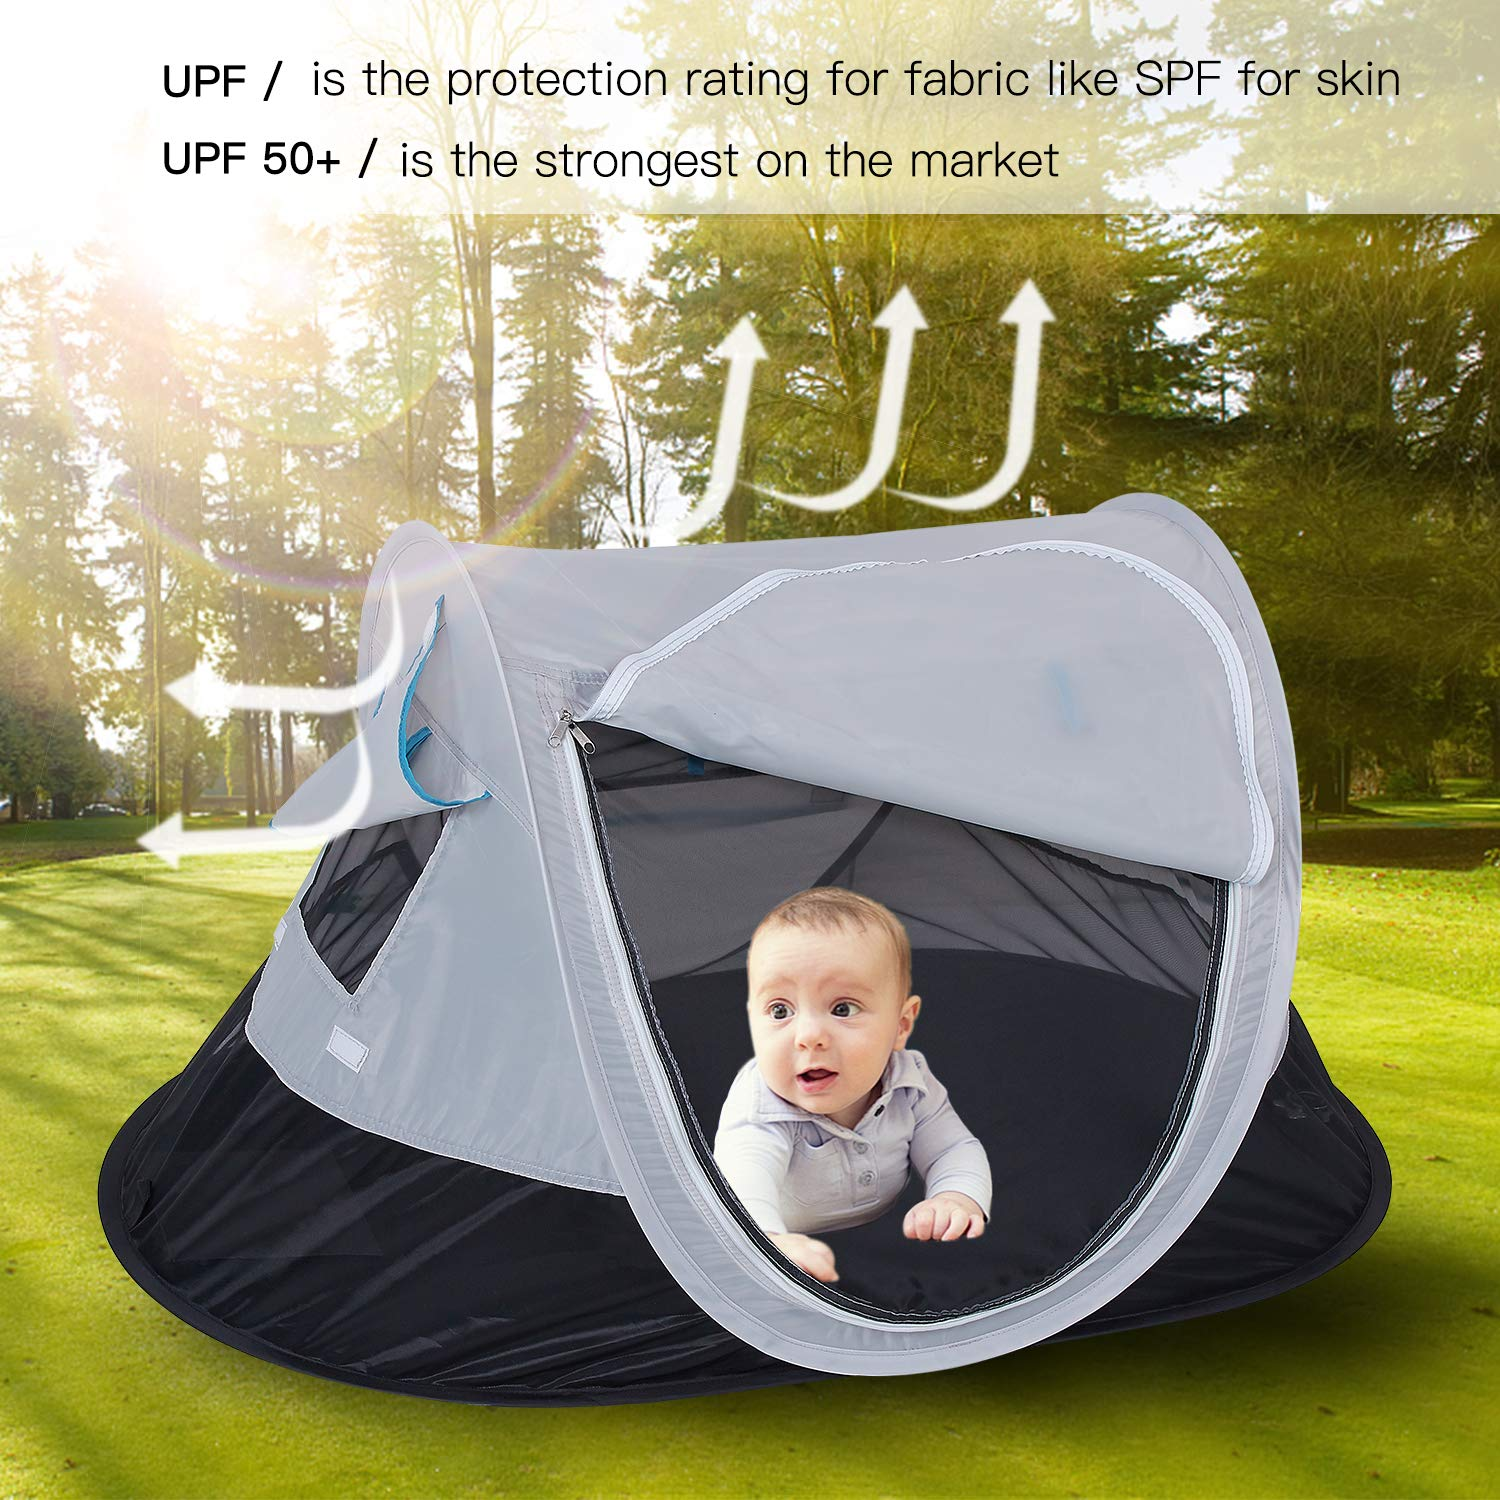 SHDIBA Portable Travel Pop up Baby Tent, Large Beach Sun Shelter Infant Tent, UPF 50+, Baby Sleep Outdoor Camping Mosquito Tent by SHDIBA (Image #6)